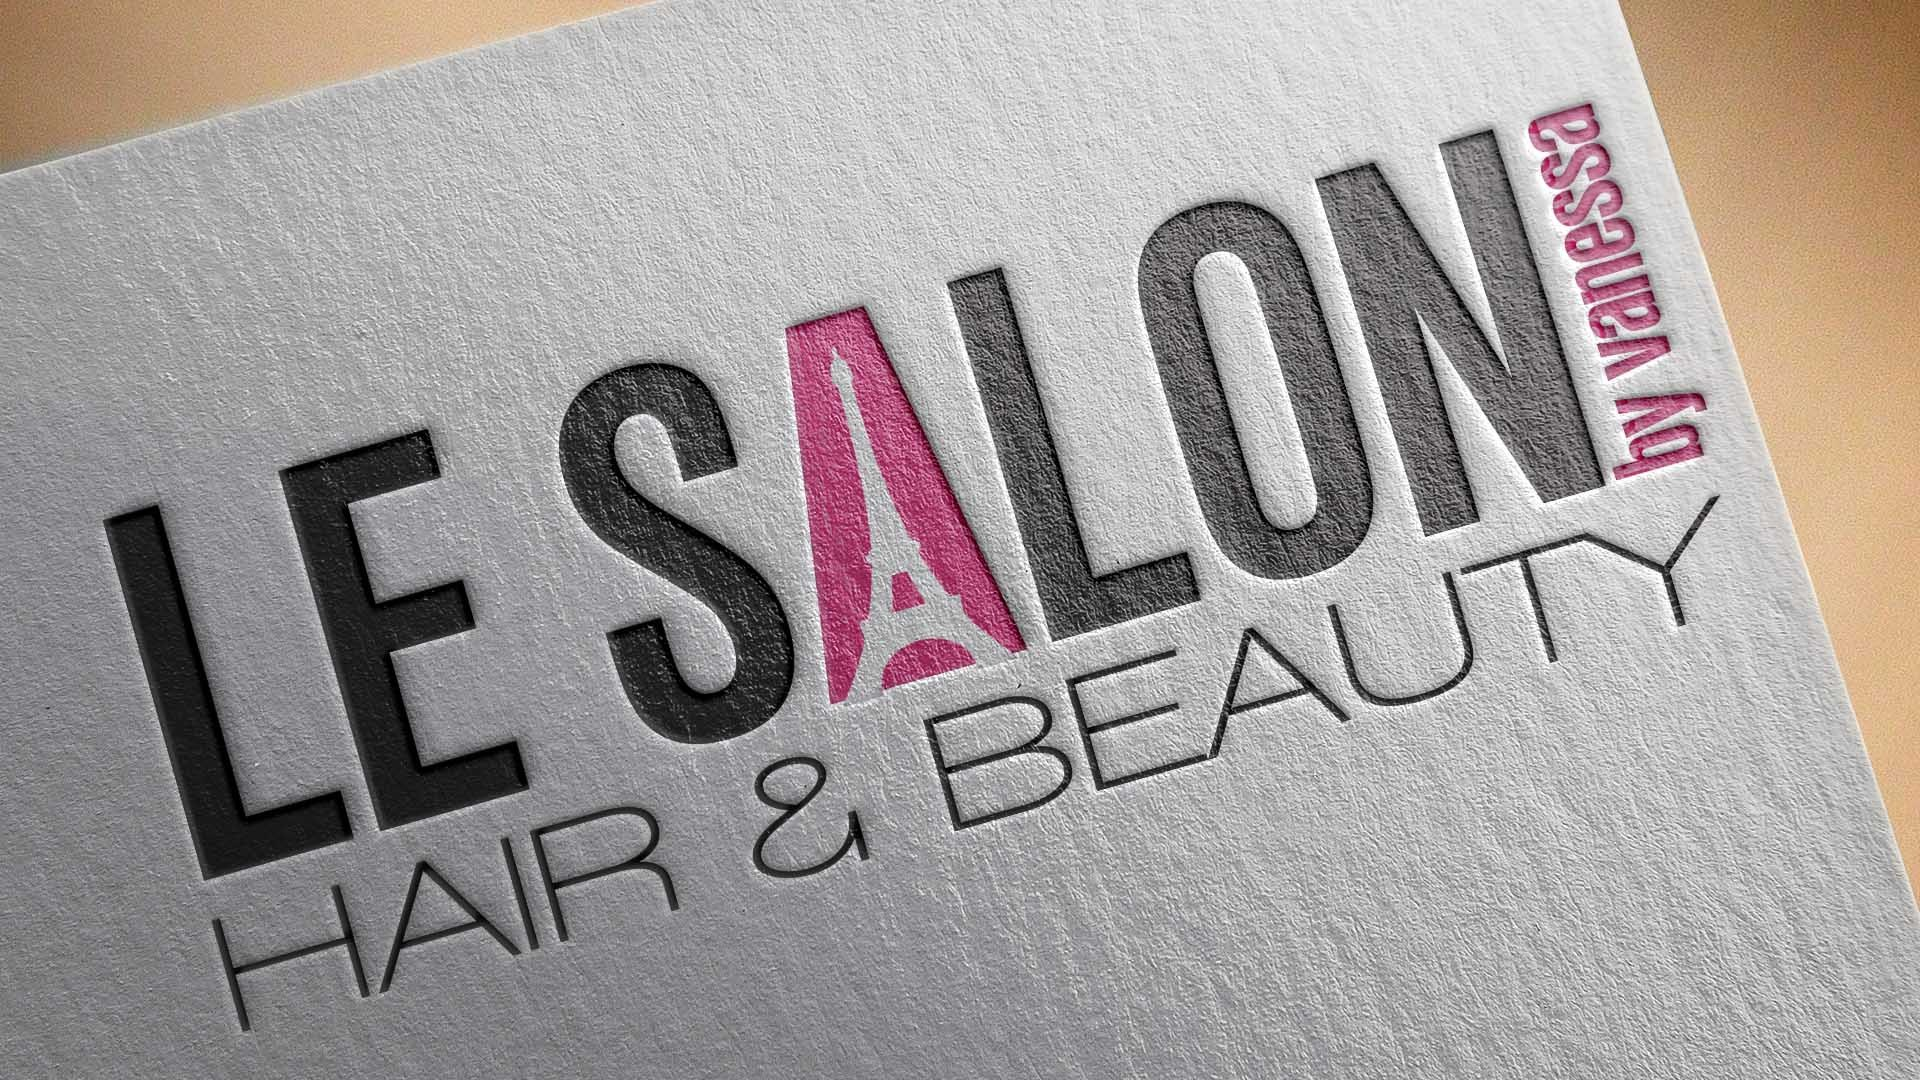 le-salon-logo-design